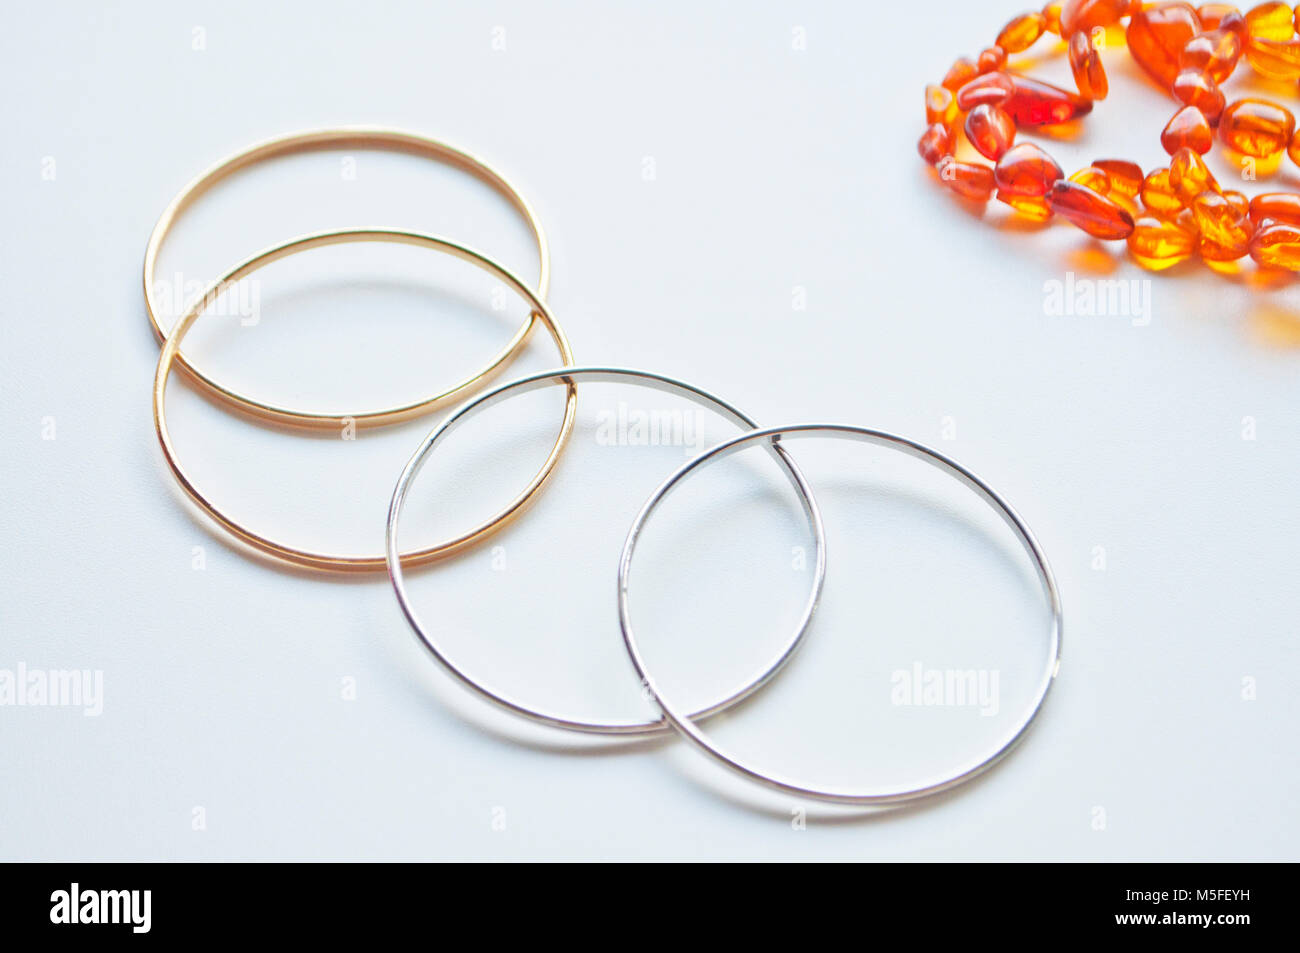 Gold ans silver bracelets isolated on a white background - Stock Image